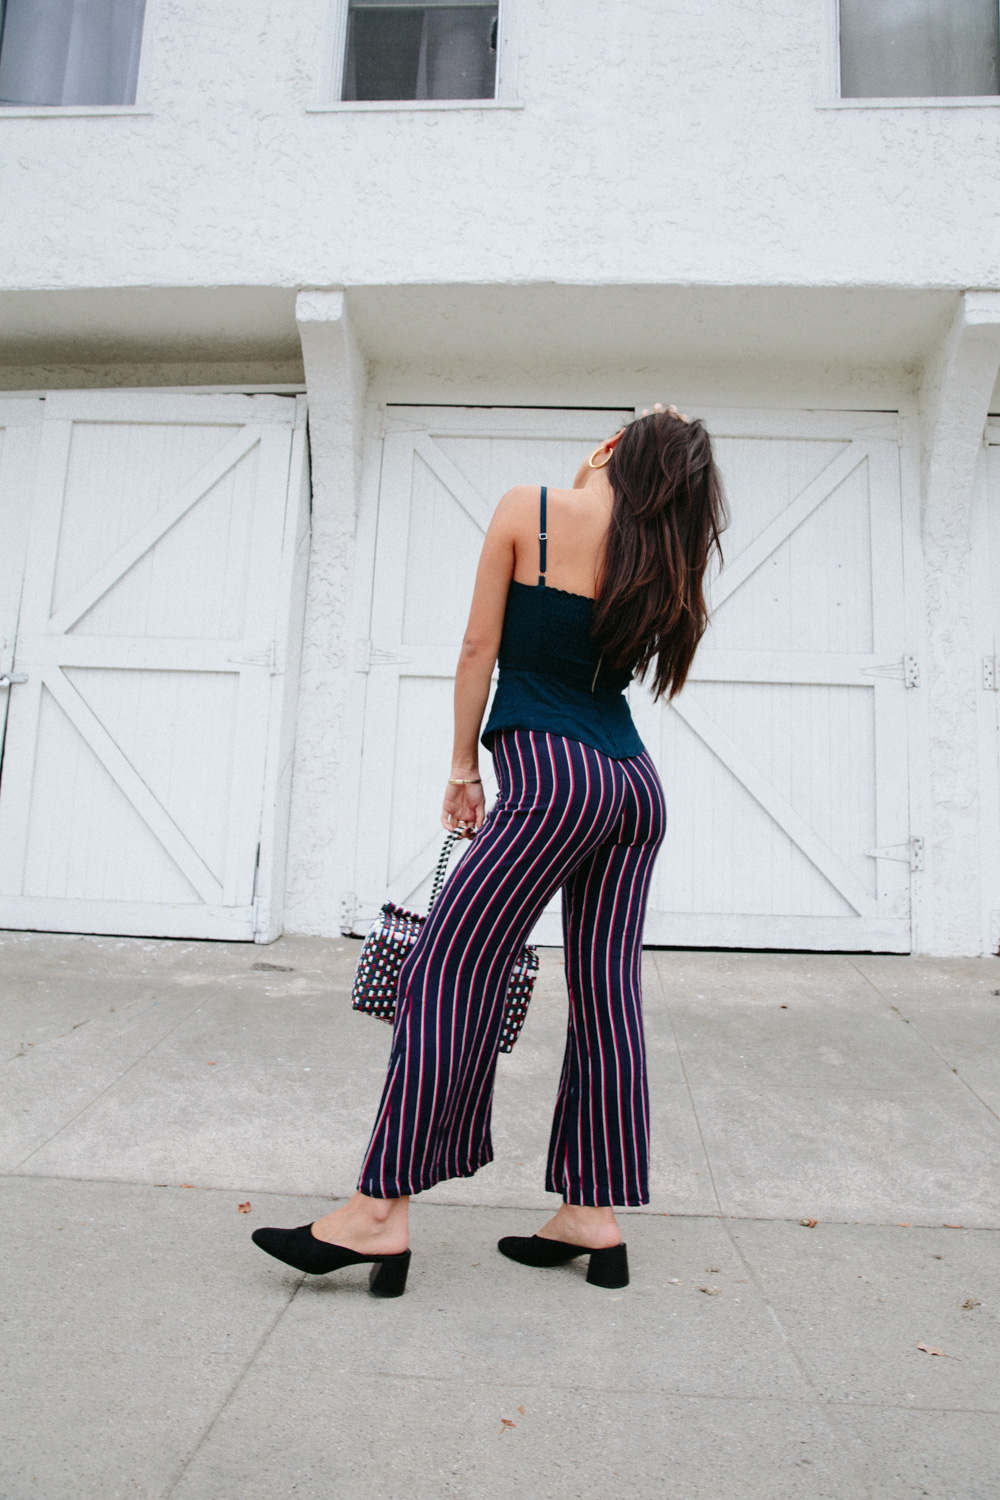 The Most Flattering Pants For Short Legs